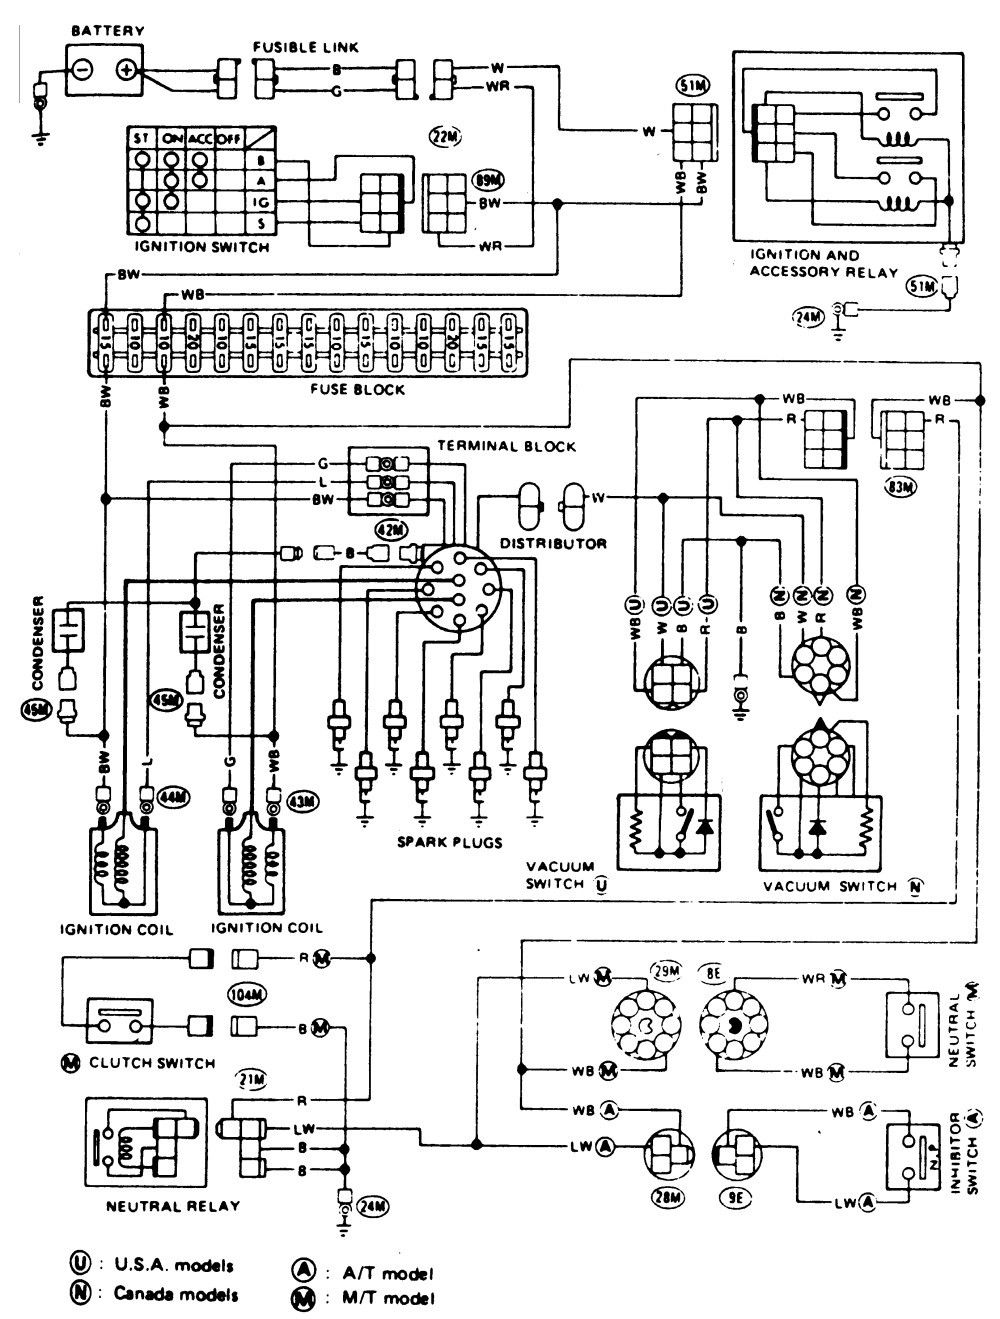 Inspirational 240sx Wiring Diagram In 2020 Diagram Nissan 240sx Wire